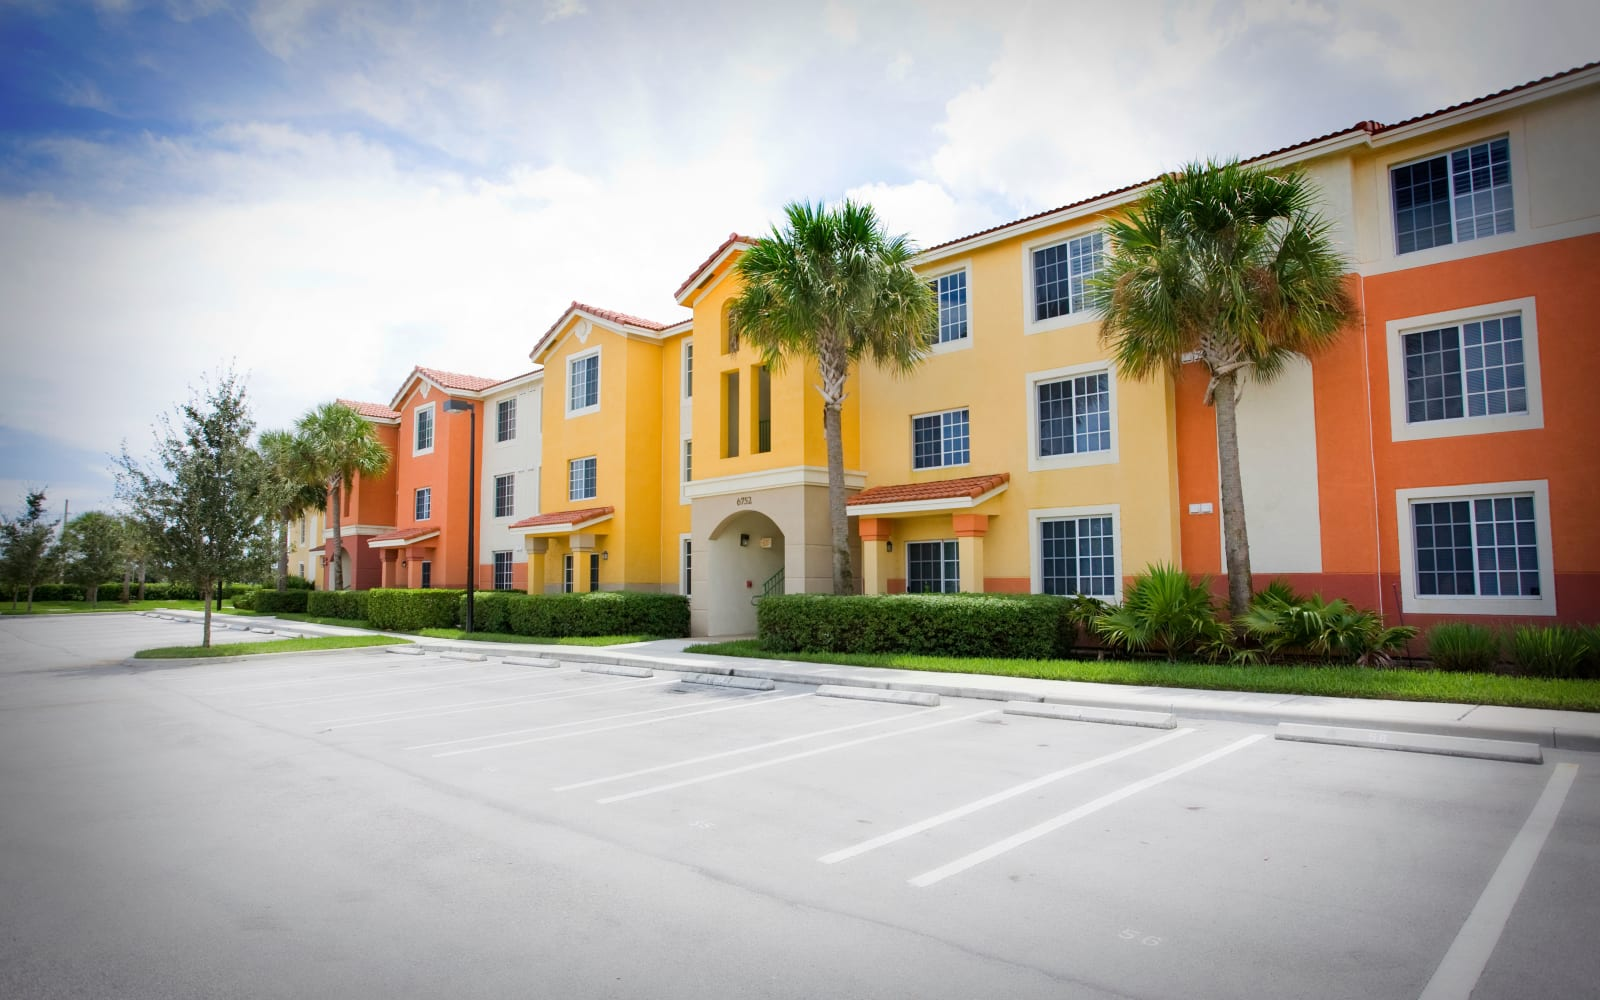 Colorful row of homes at Green Cay Village in Boynton Beach, Florida